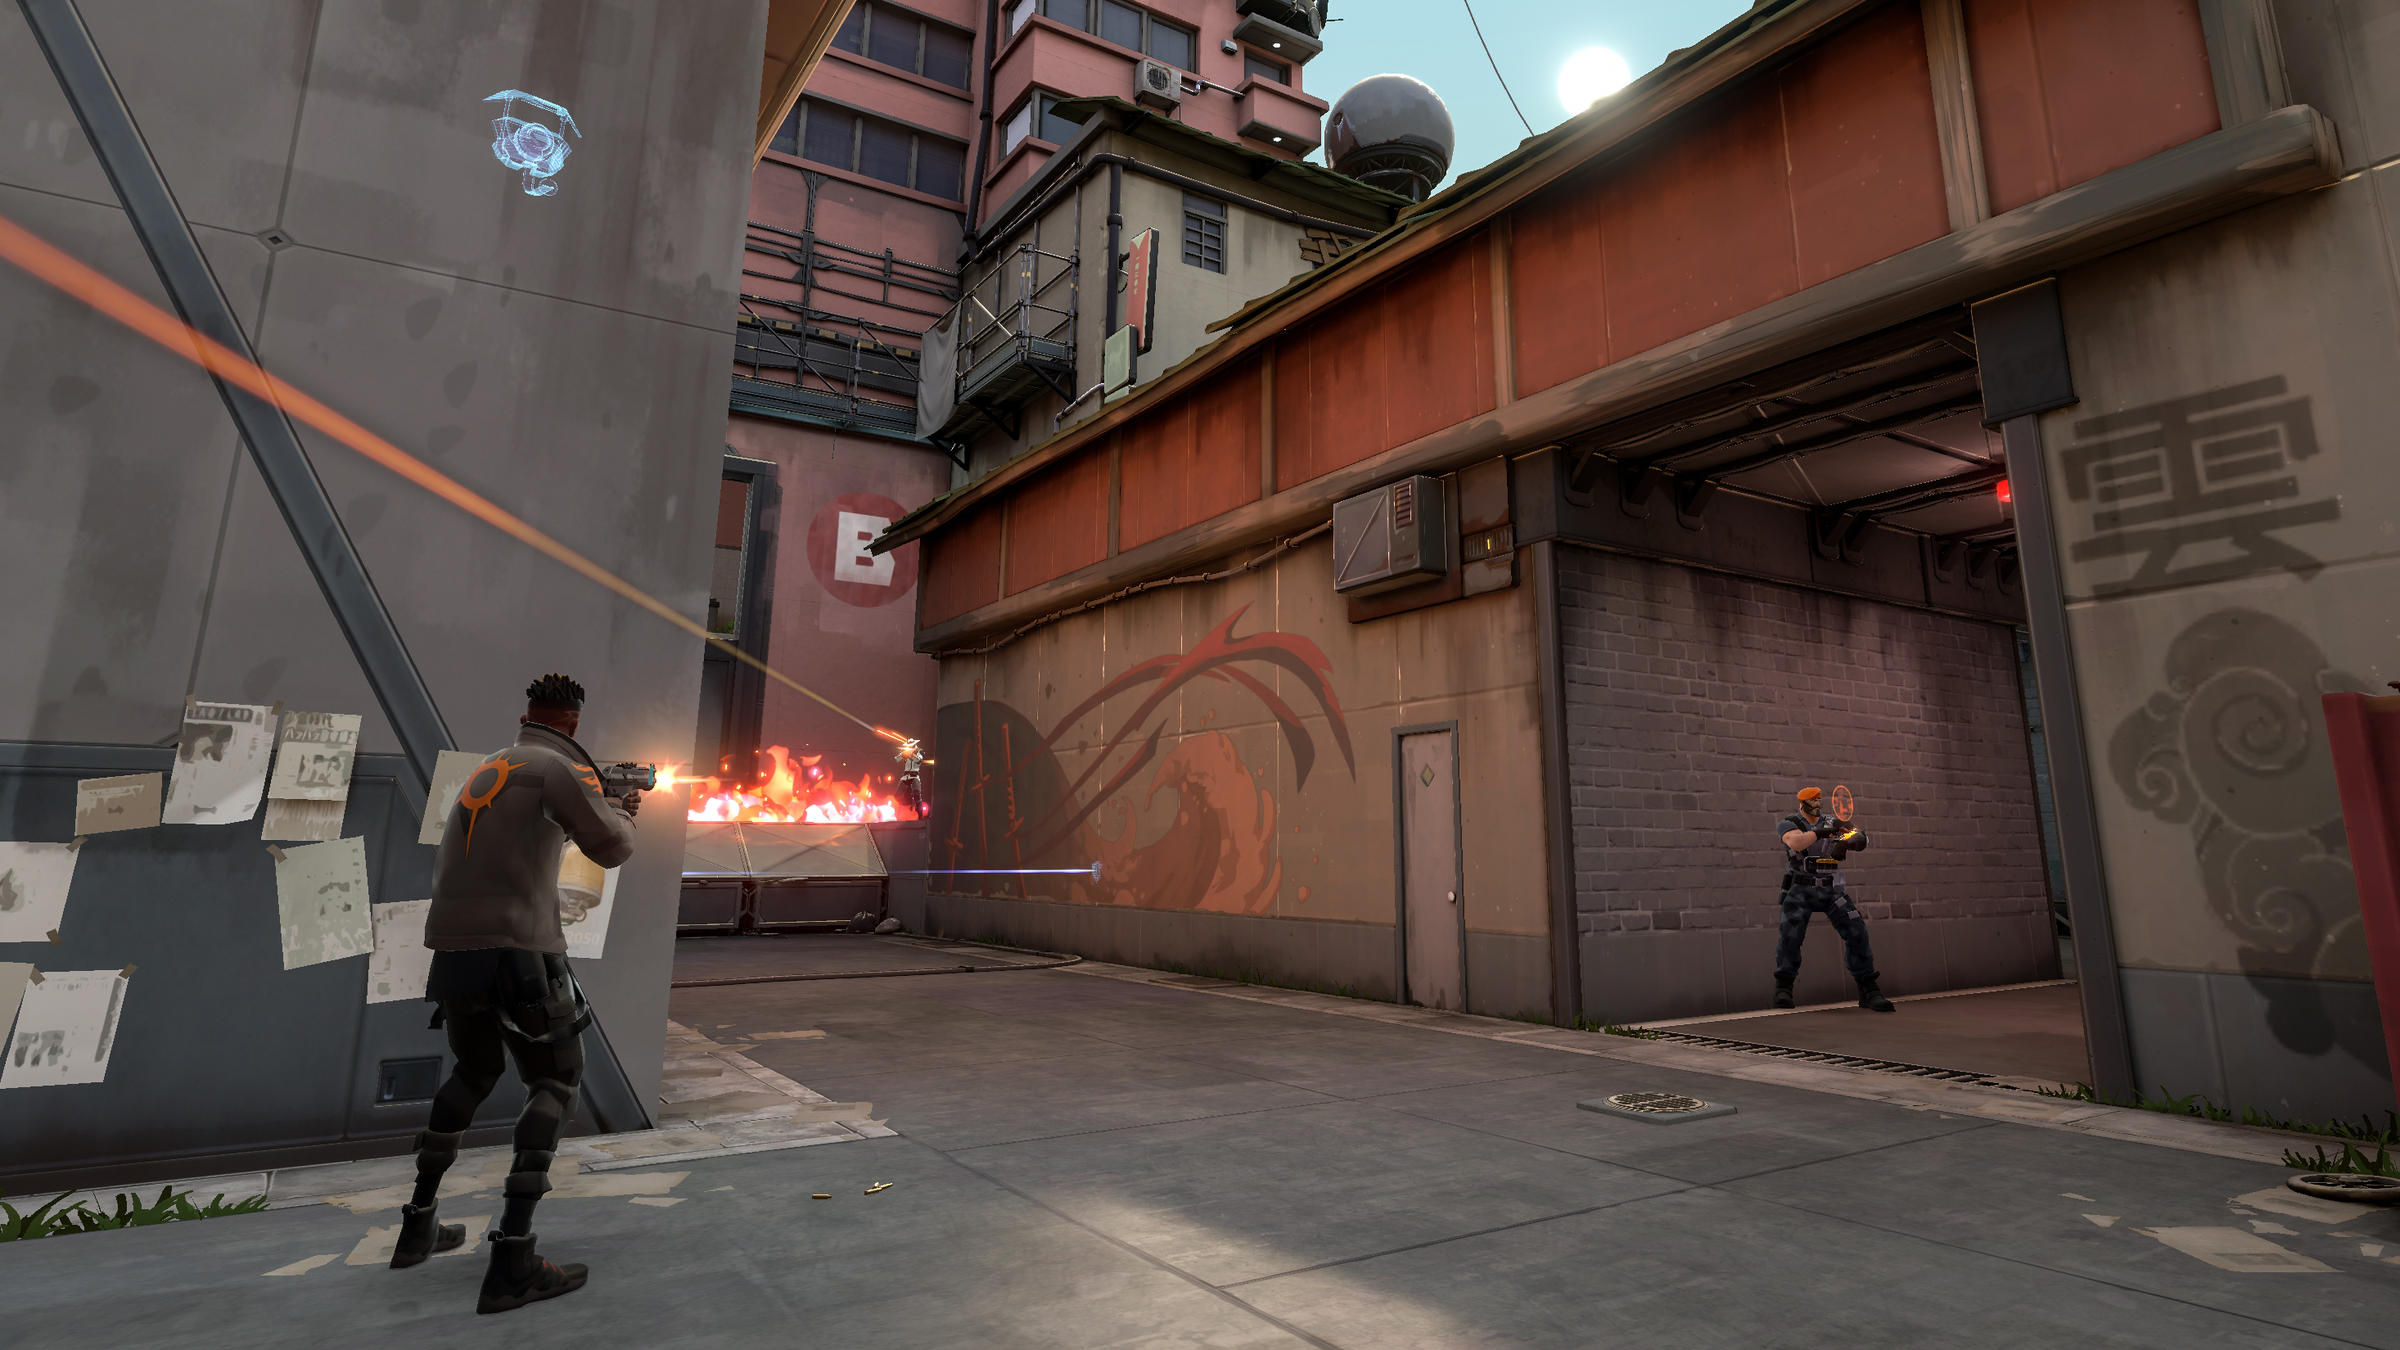 Valorant patch 3.0 adds increased walking and running fire inaccuracy, changes to the effect of tagging and weapon deadzone